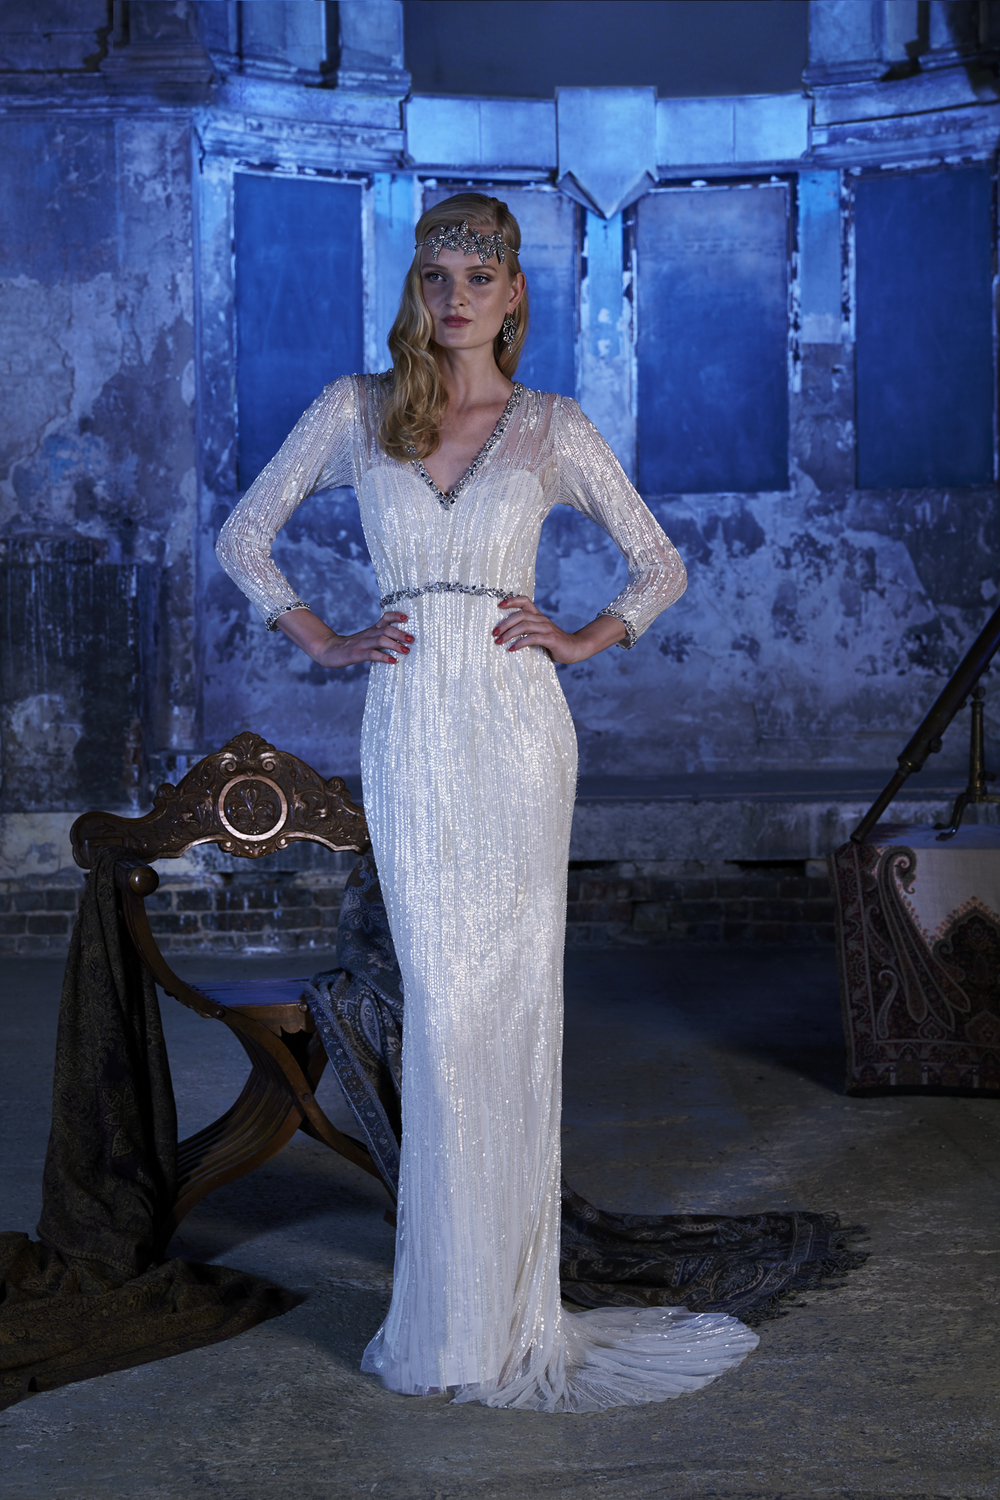 atlantis-dress , Vintage inspired Wedding Dresses, 2017 Stardust Collection, Eliza Jane Howell , Images - Chris Dawes Photography